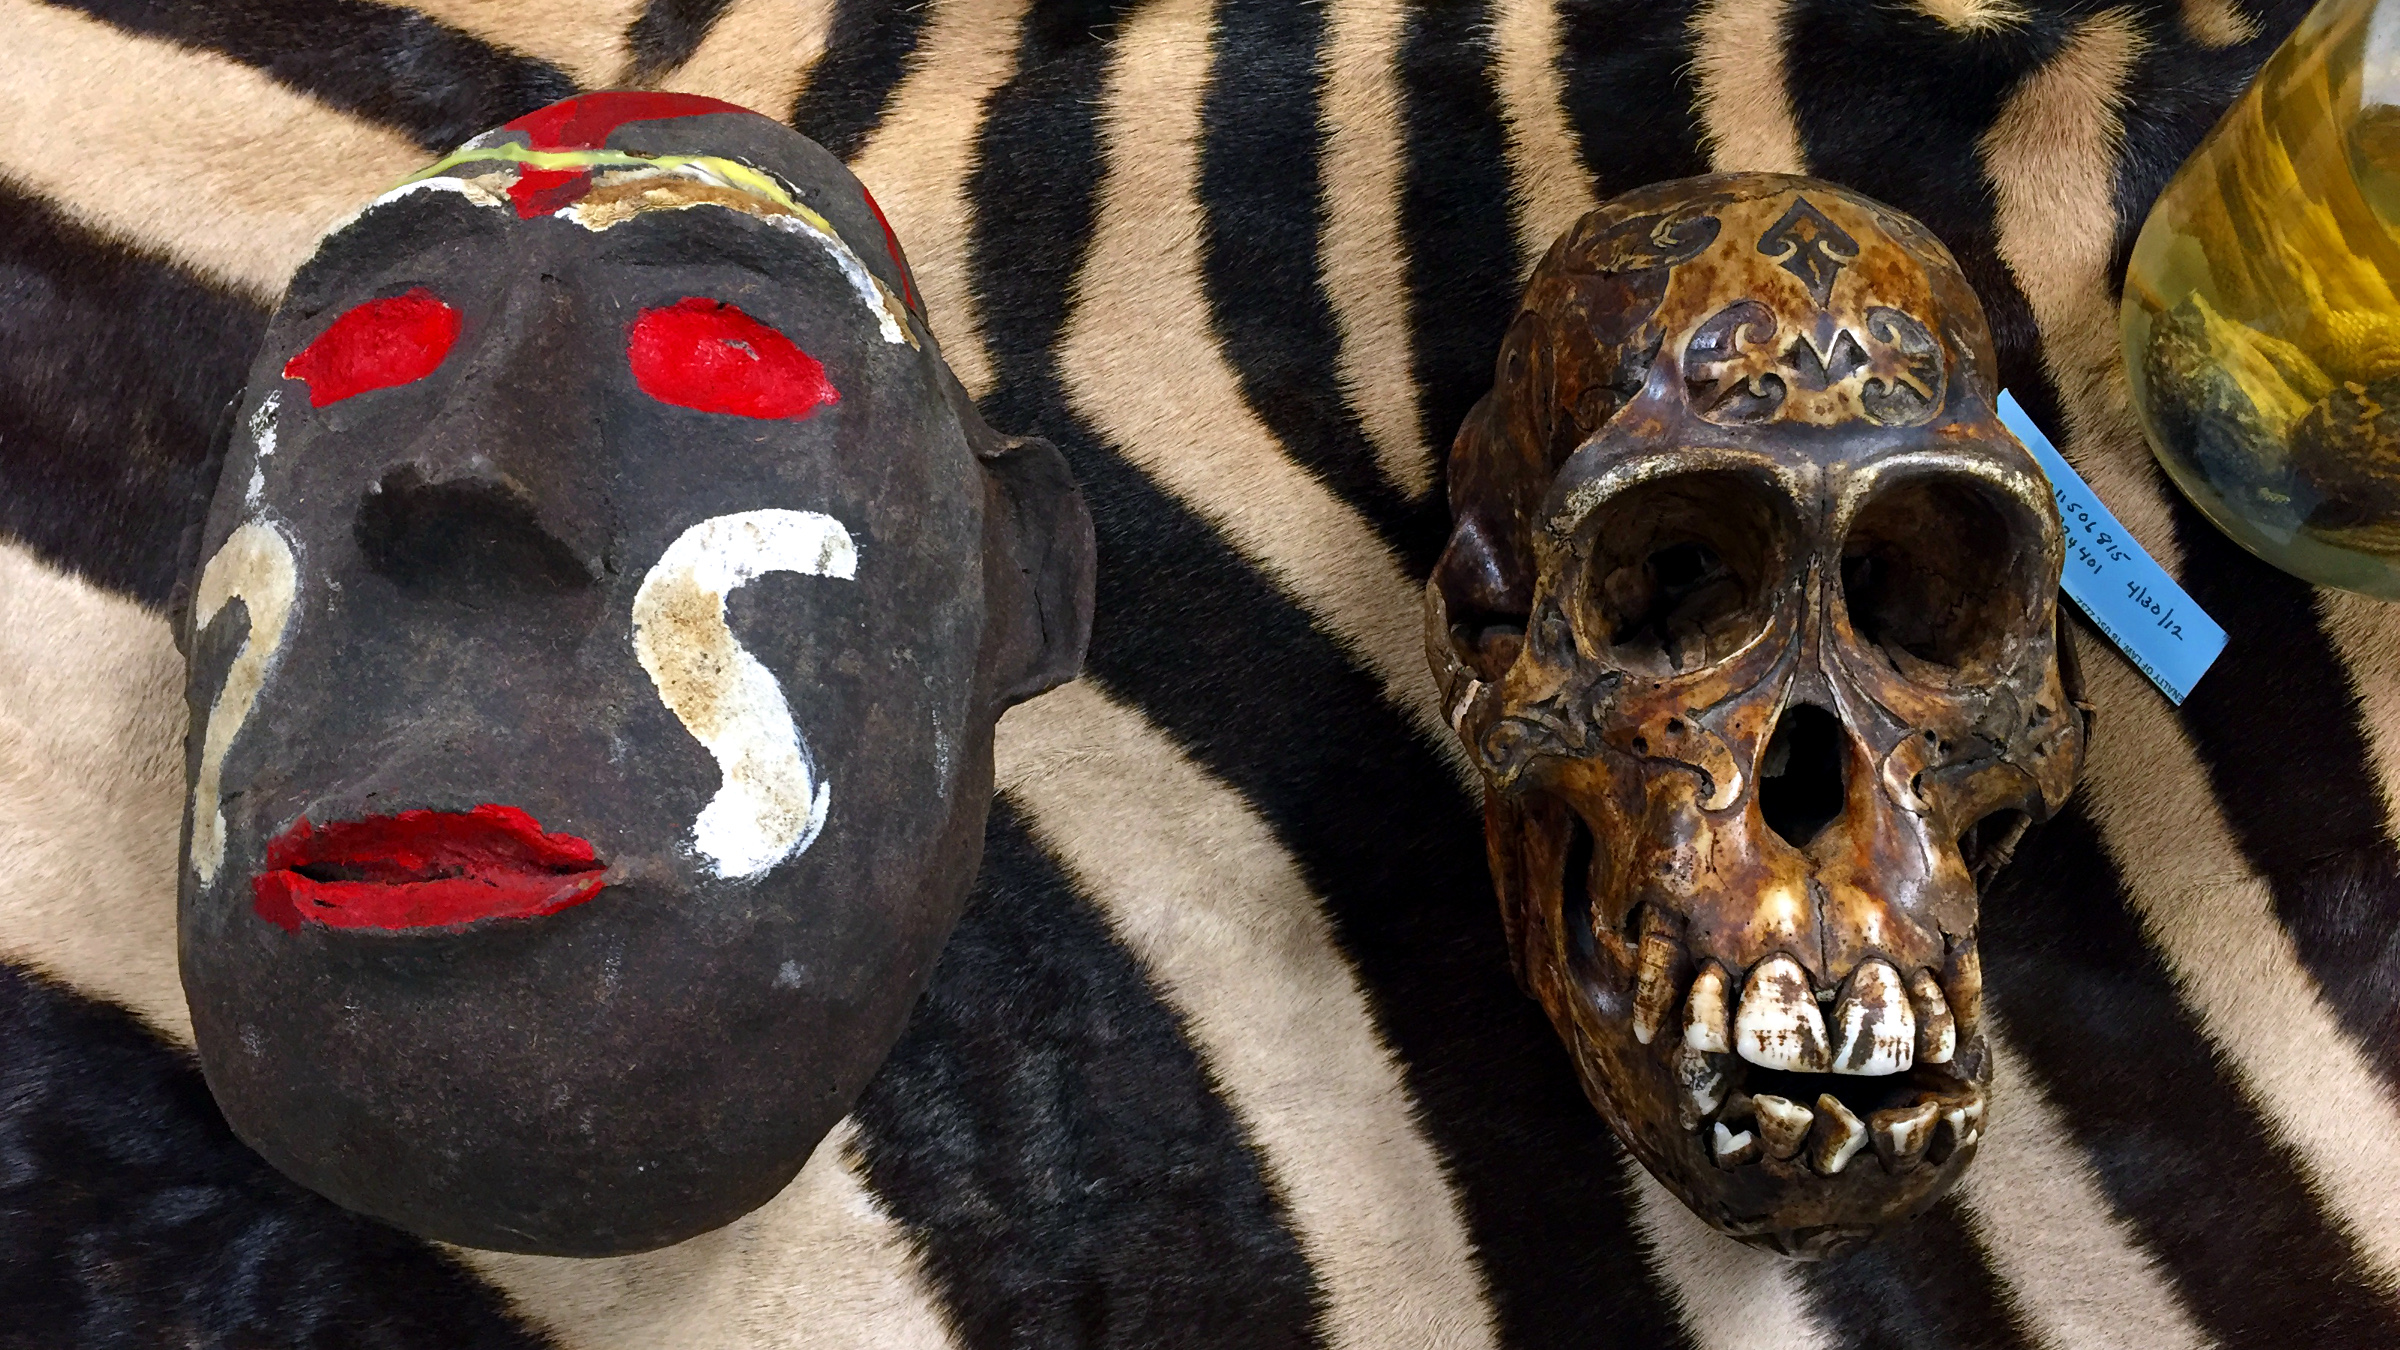 A carved Chimpanzee skull and the ceramic mask that hid it.